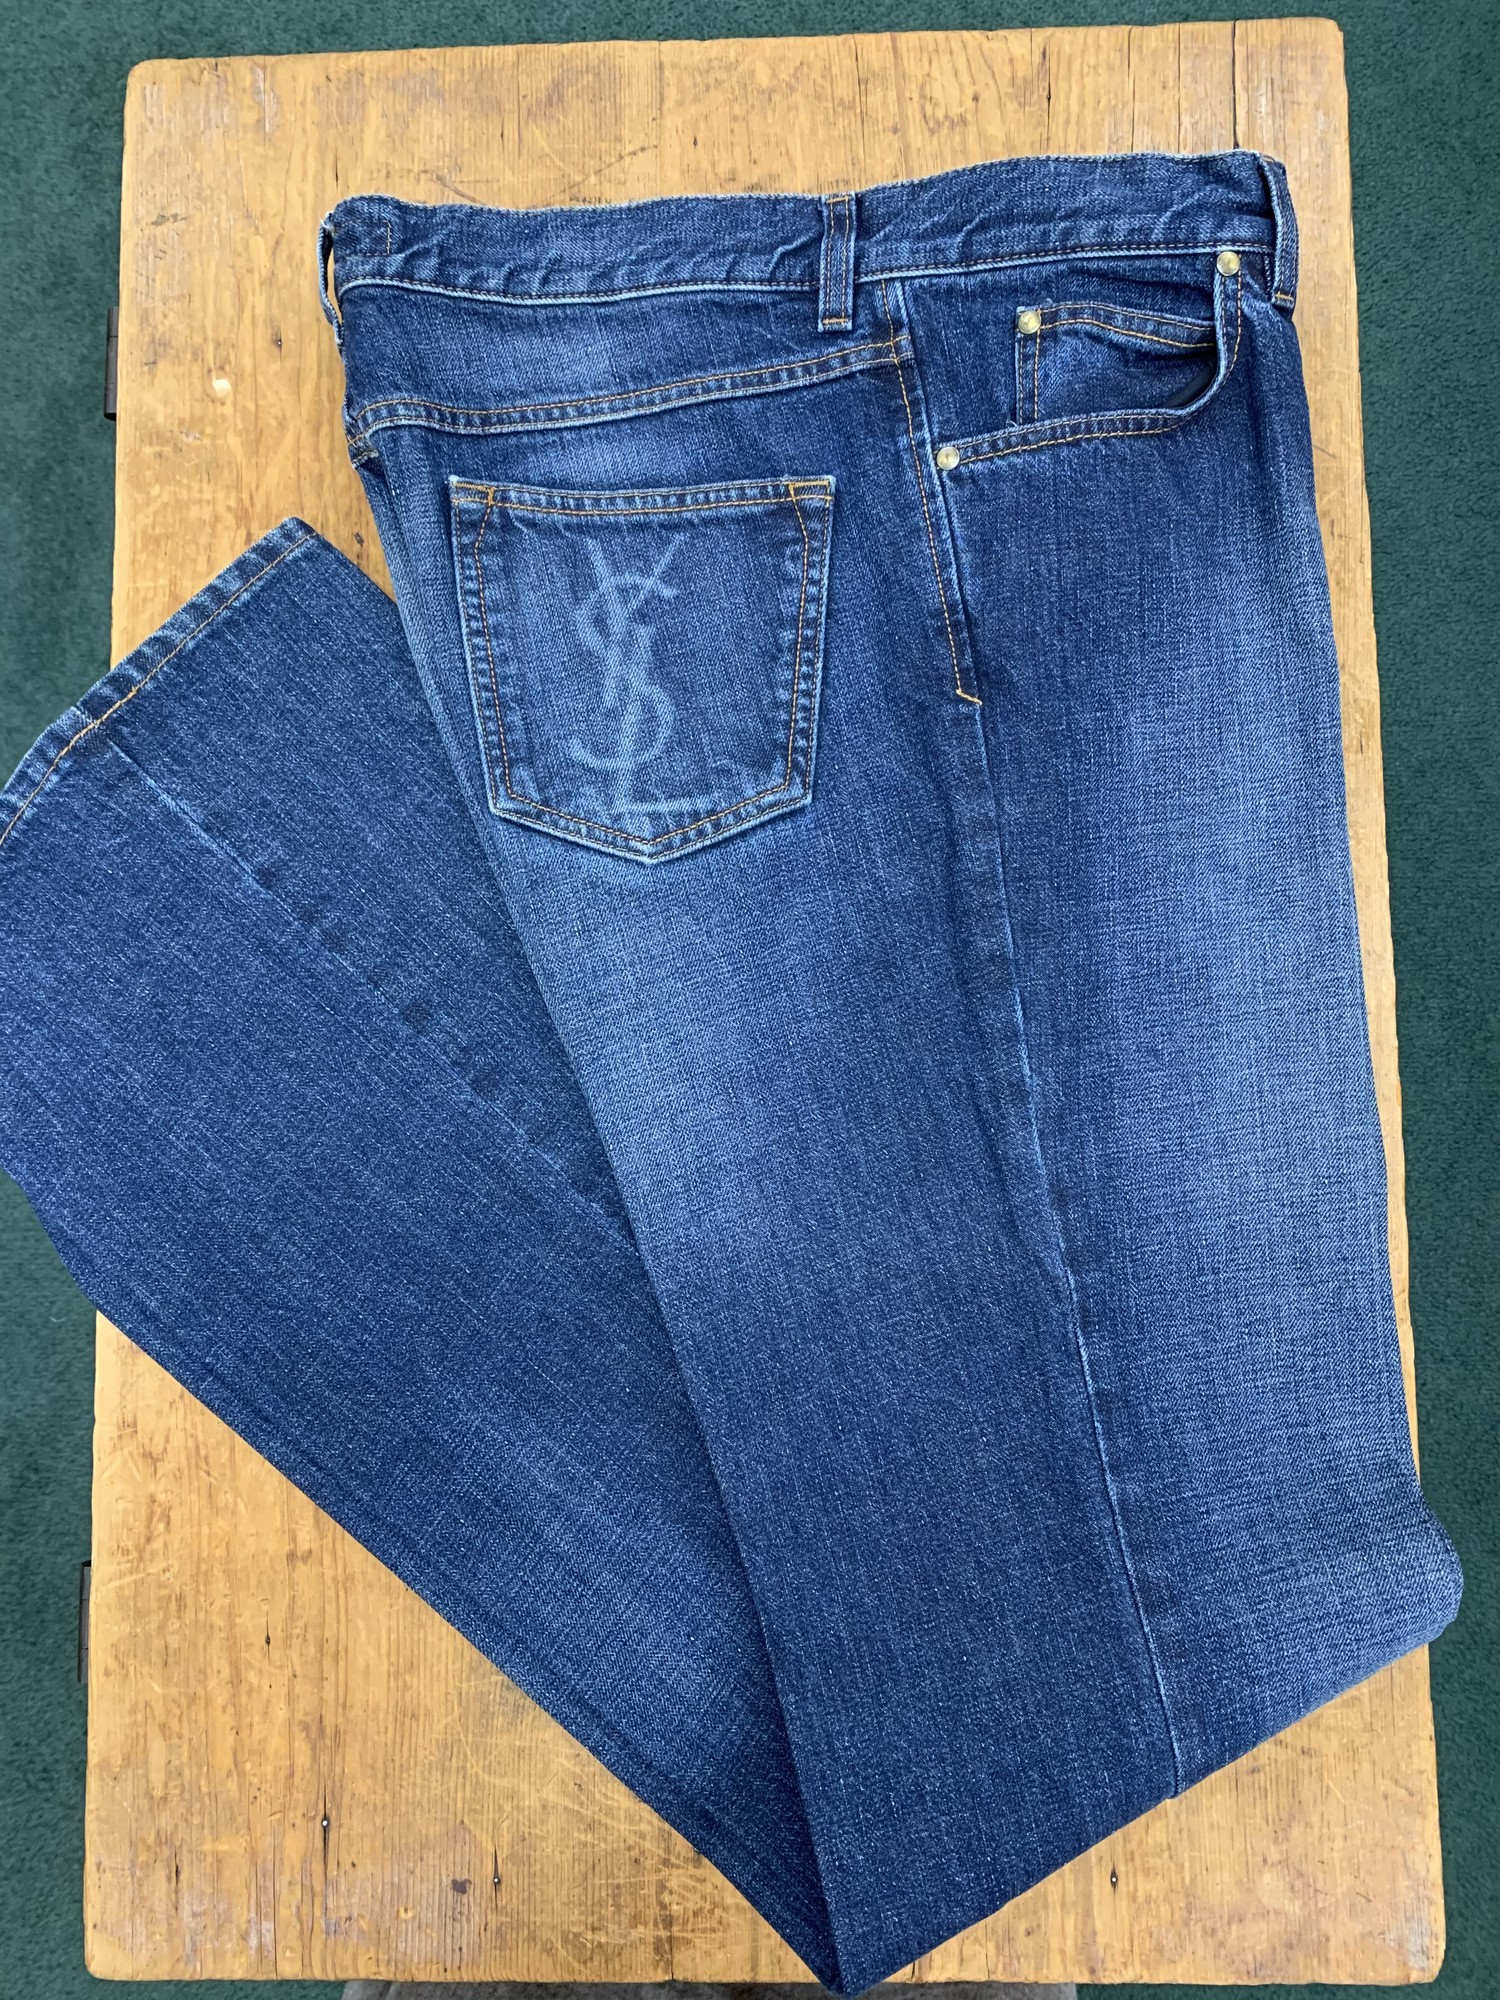 ** Yves Saint Laurent **<br /> Color: Denim<br /> Size: 36W 36L<br /> Condition: Excellent